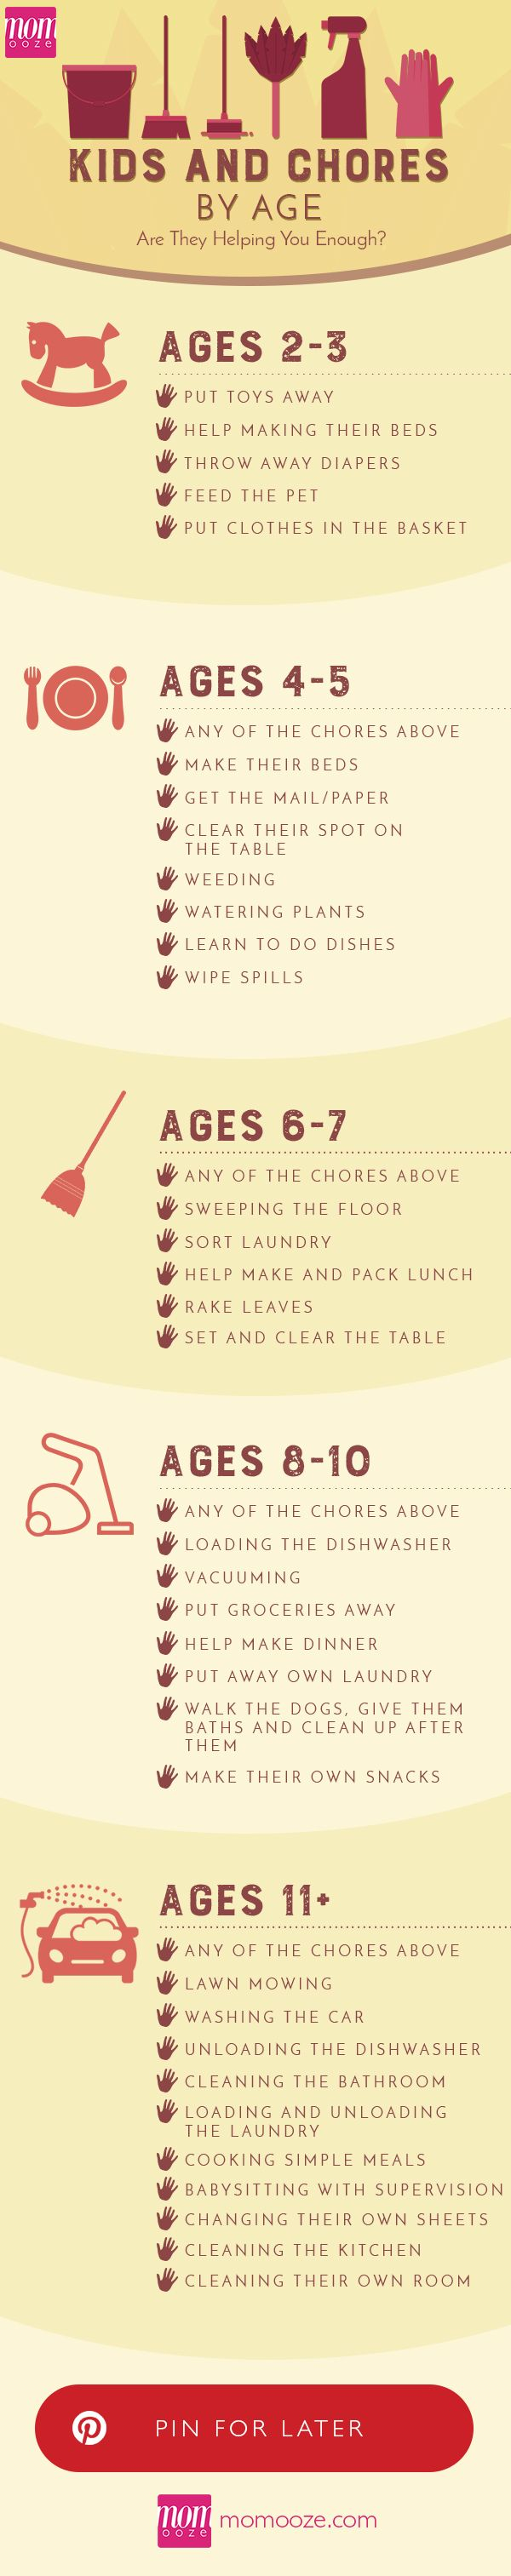 Kids Chores by Age: Are they helping you enough?  #chores #kids #help                                                                                                                                                                                 More